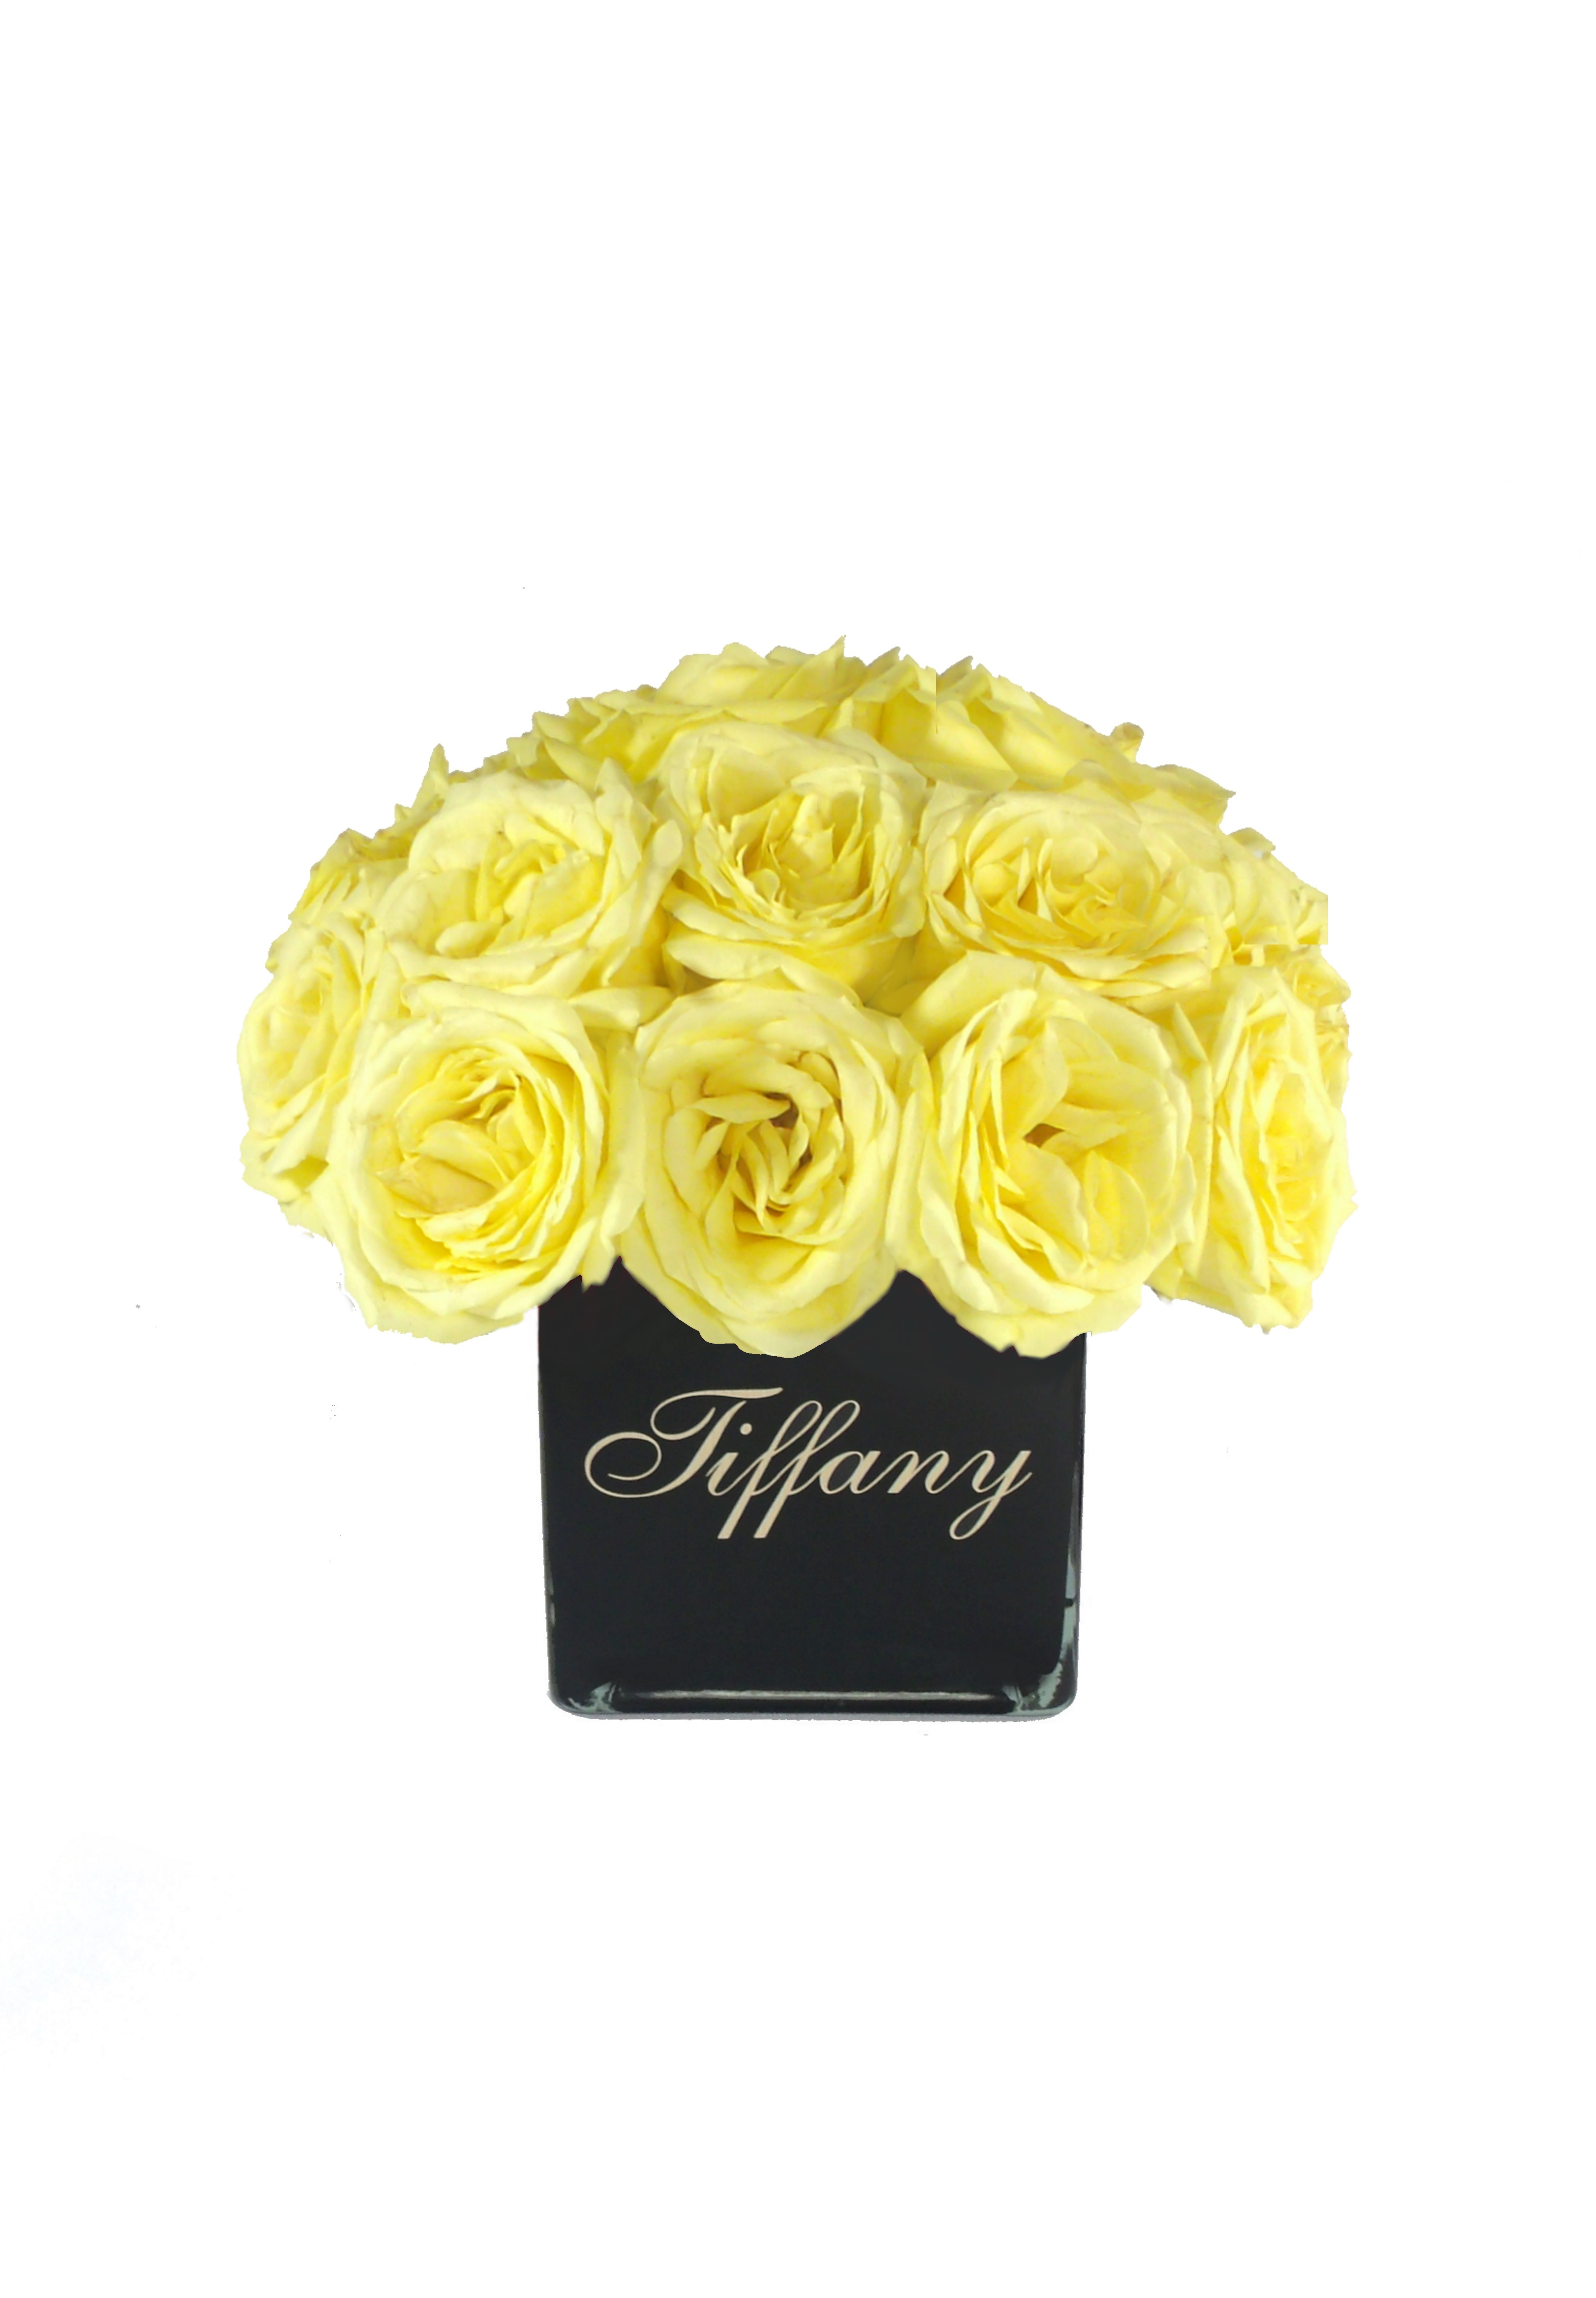 Love Cubeblack Vase Wyellow Roses Array Of Gifts